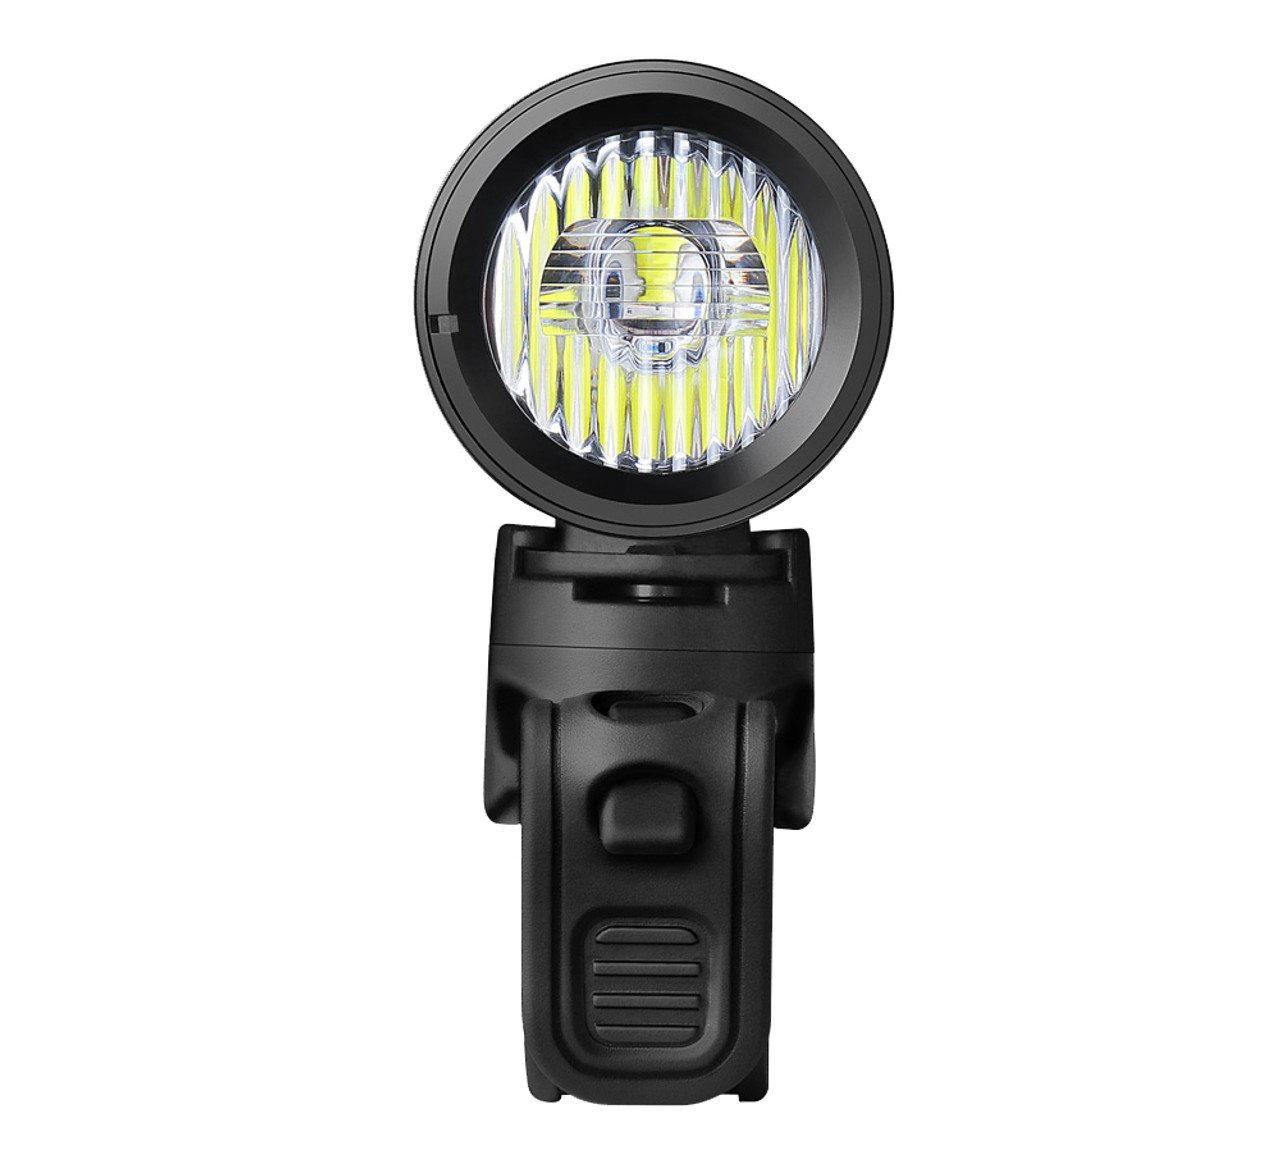 Ravemen CR1000 USB Rechargeable Front Light with Remote in Matt/Gloss Black (1000 Lumens)